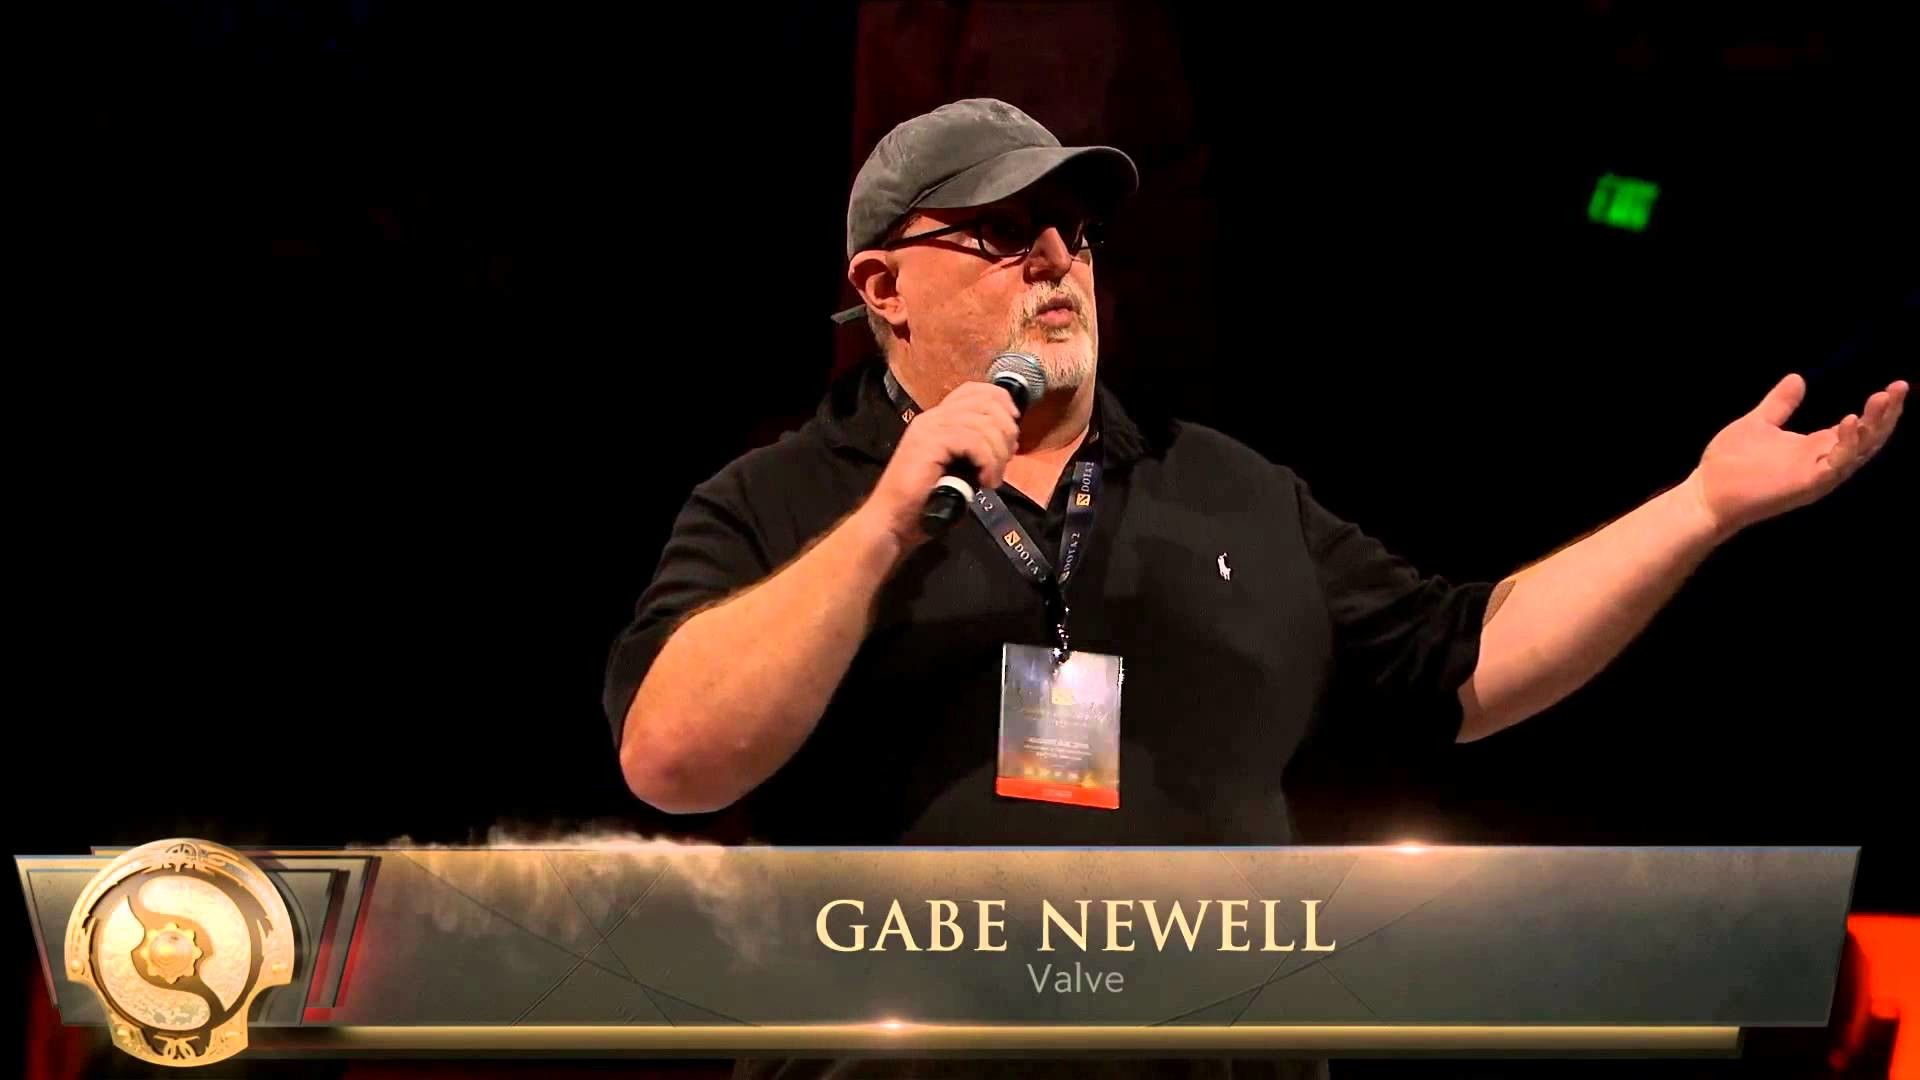 """Gabe Newell """"Welcome To The International"""" & Speech V.2015   #TI5 – YouTube"""